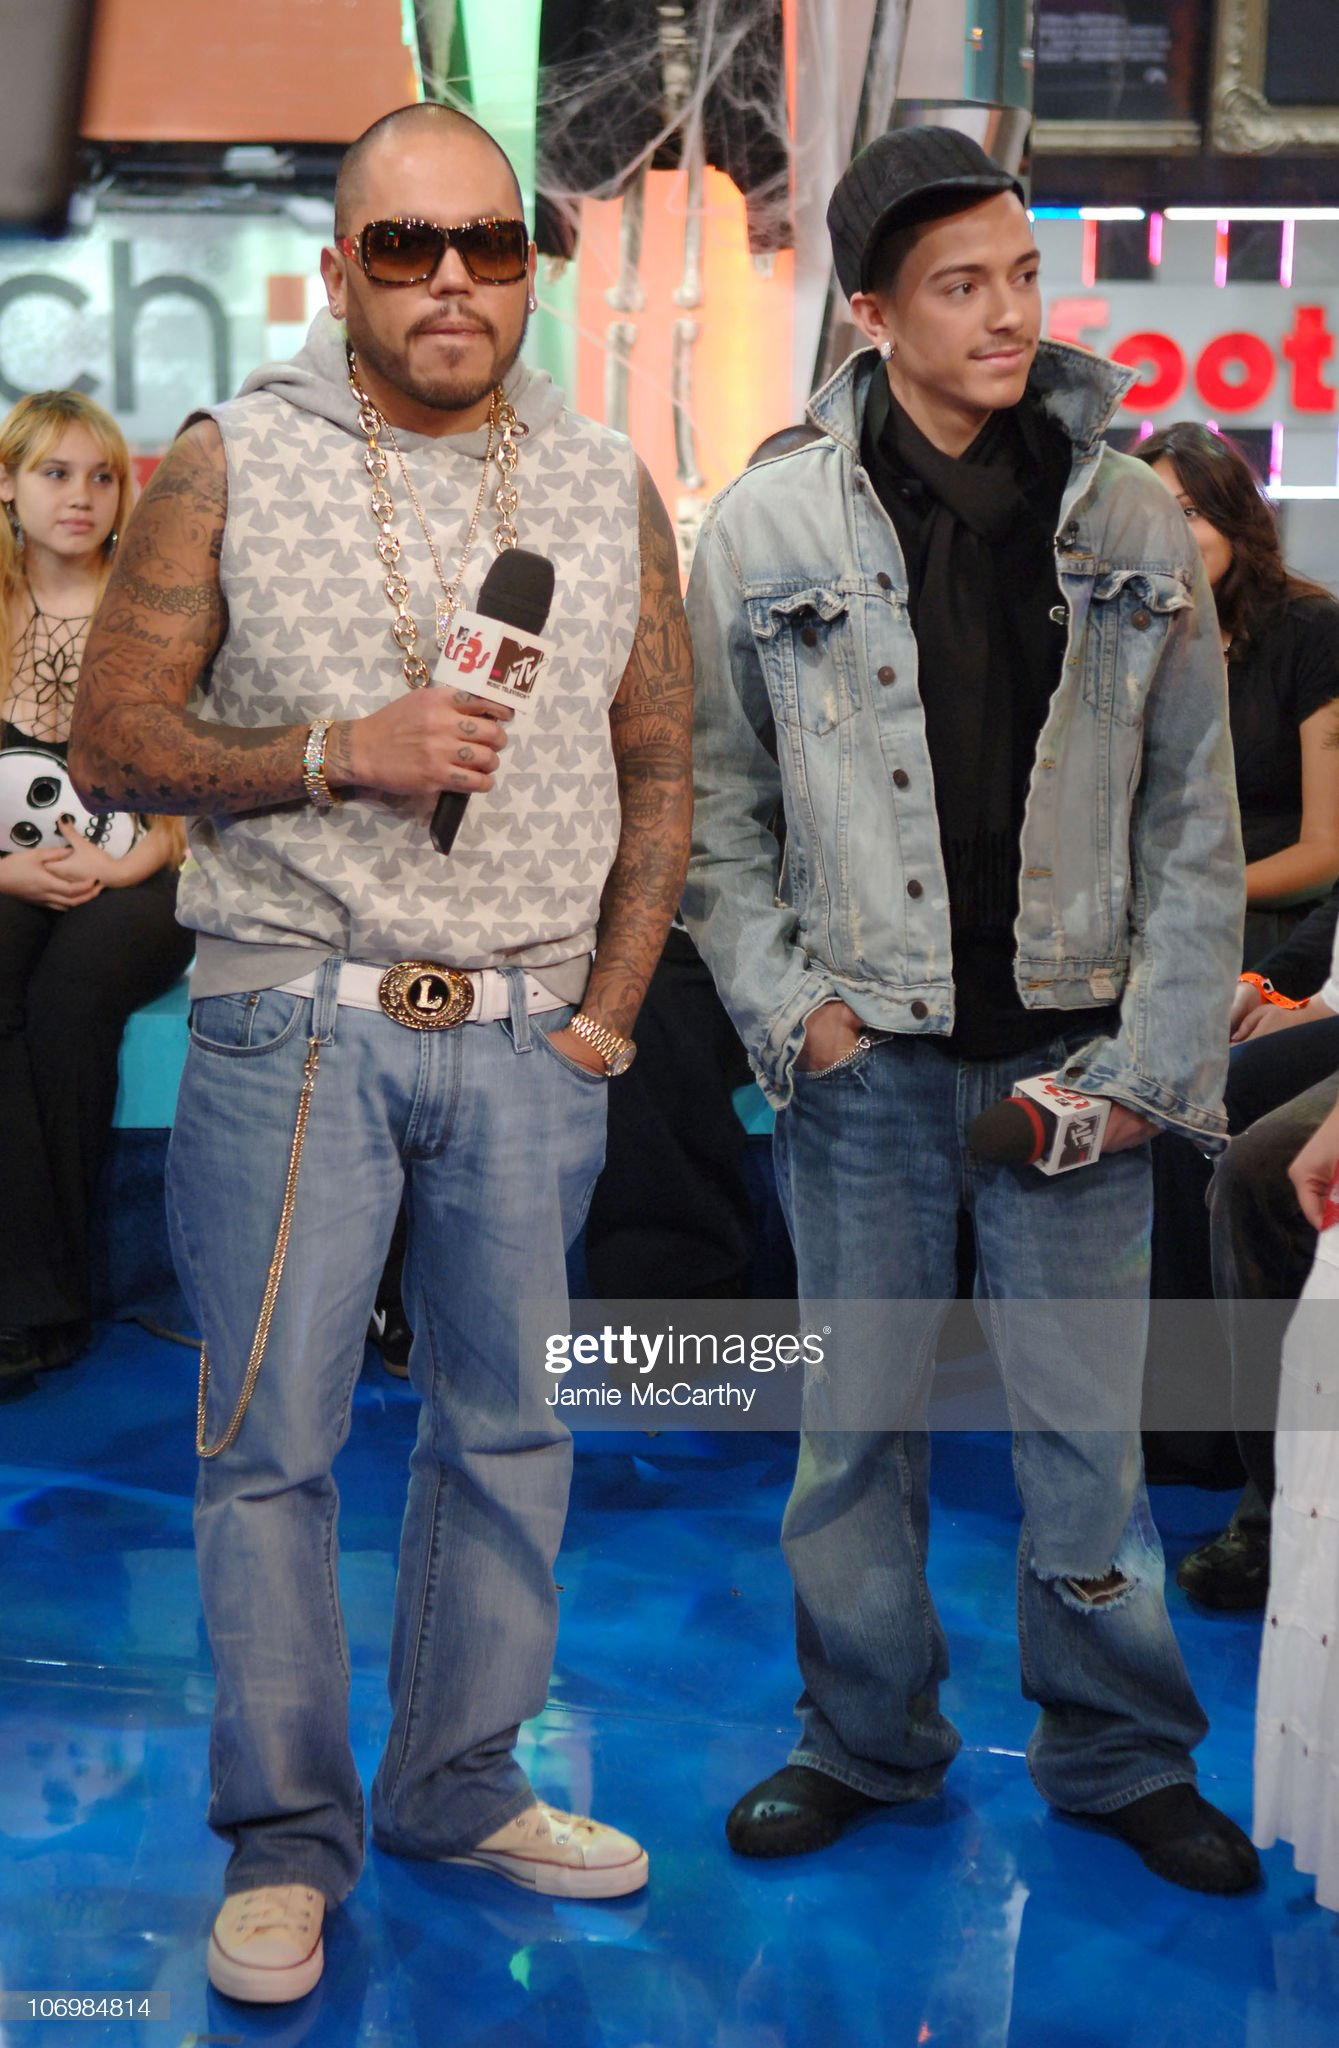 ¿Cuánto mide A.B Abraham Quintanilla III? - Altura - Real height Quintanilla-and-peewee-of-the-kumbia-allstars-picture-id106984814?s=2048x2048